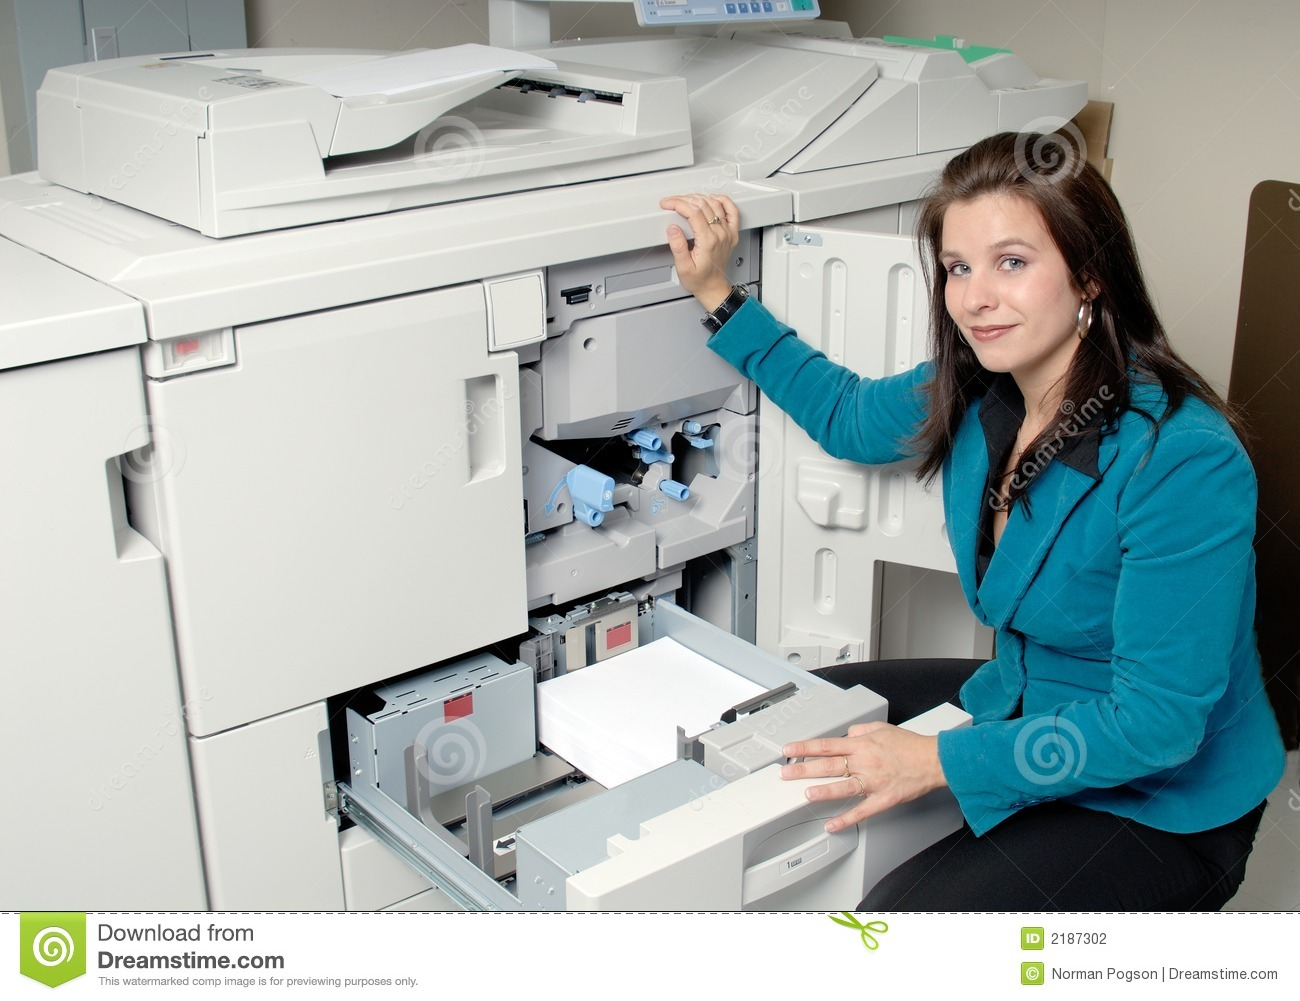 Photocopying Business in Pakistan